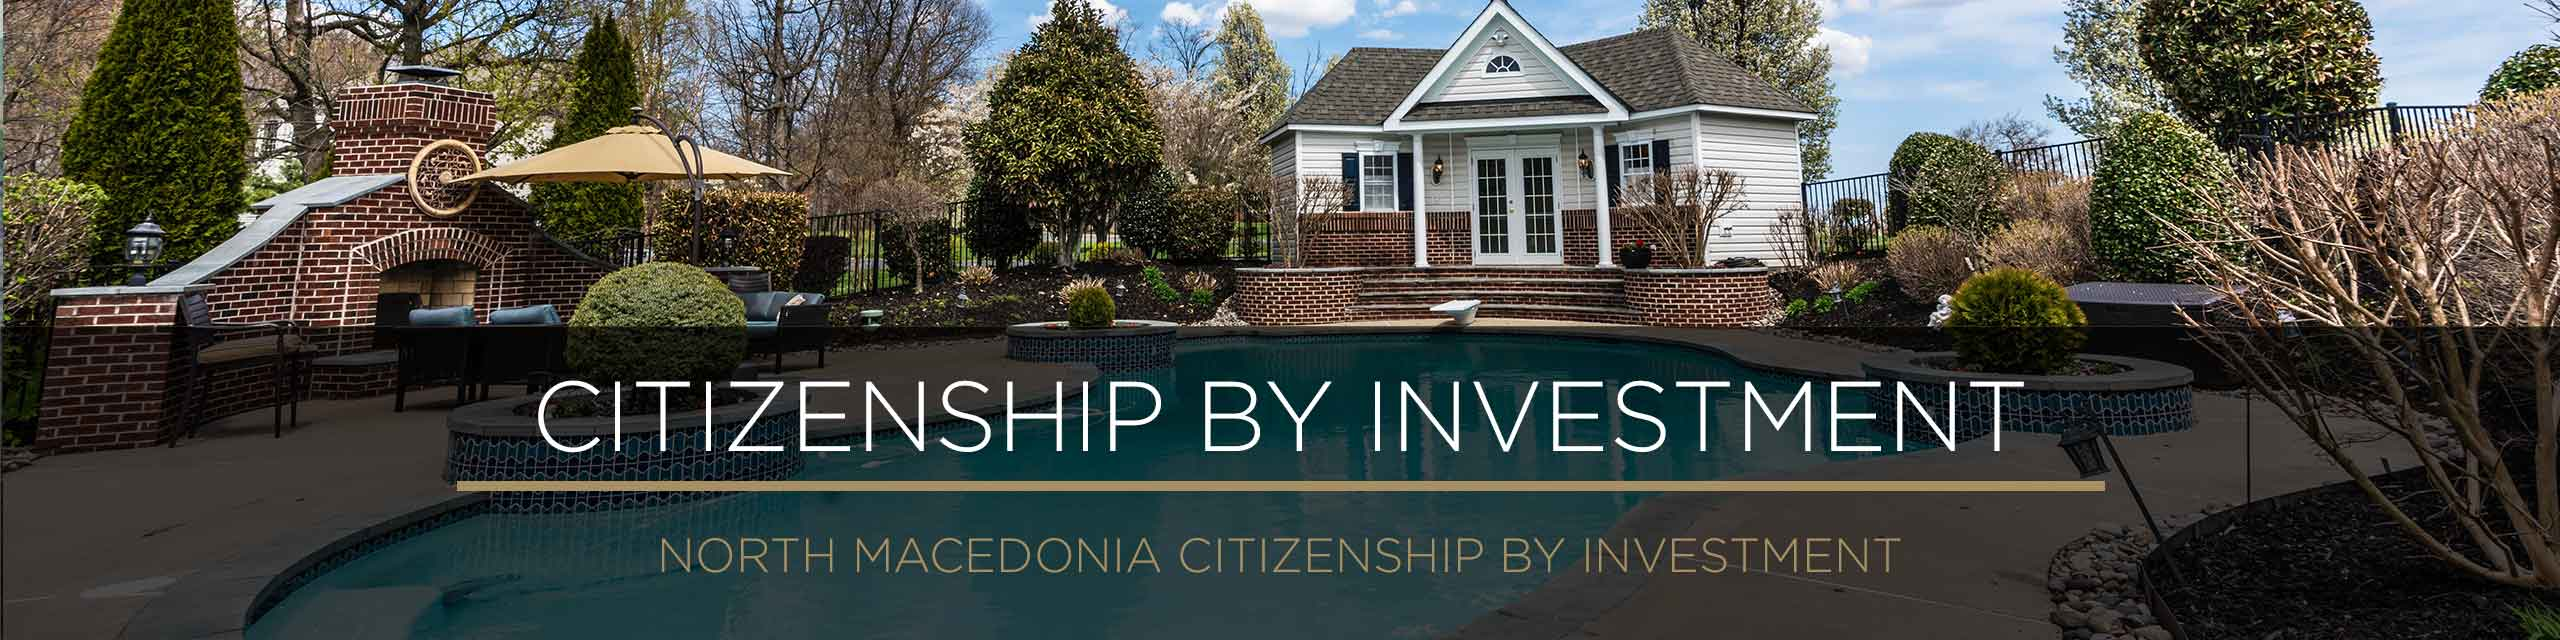 Citizenship by Investment - North Macedonia